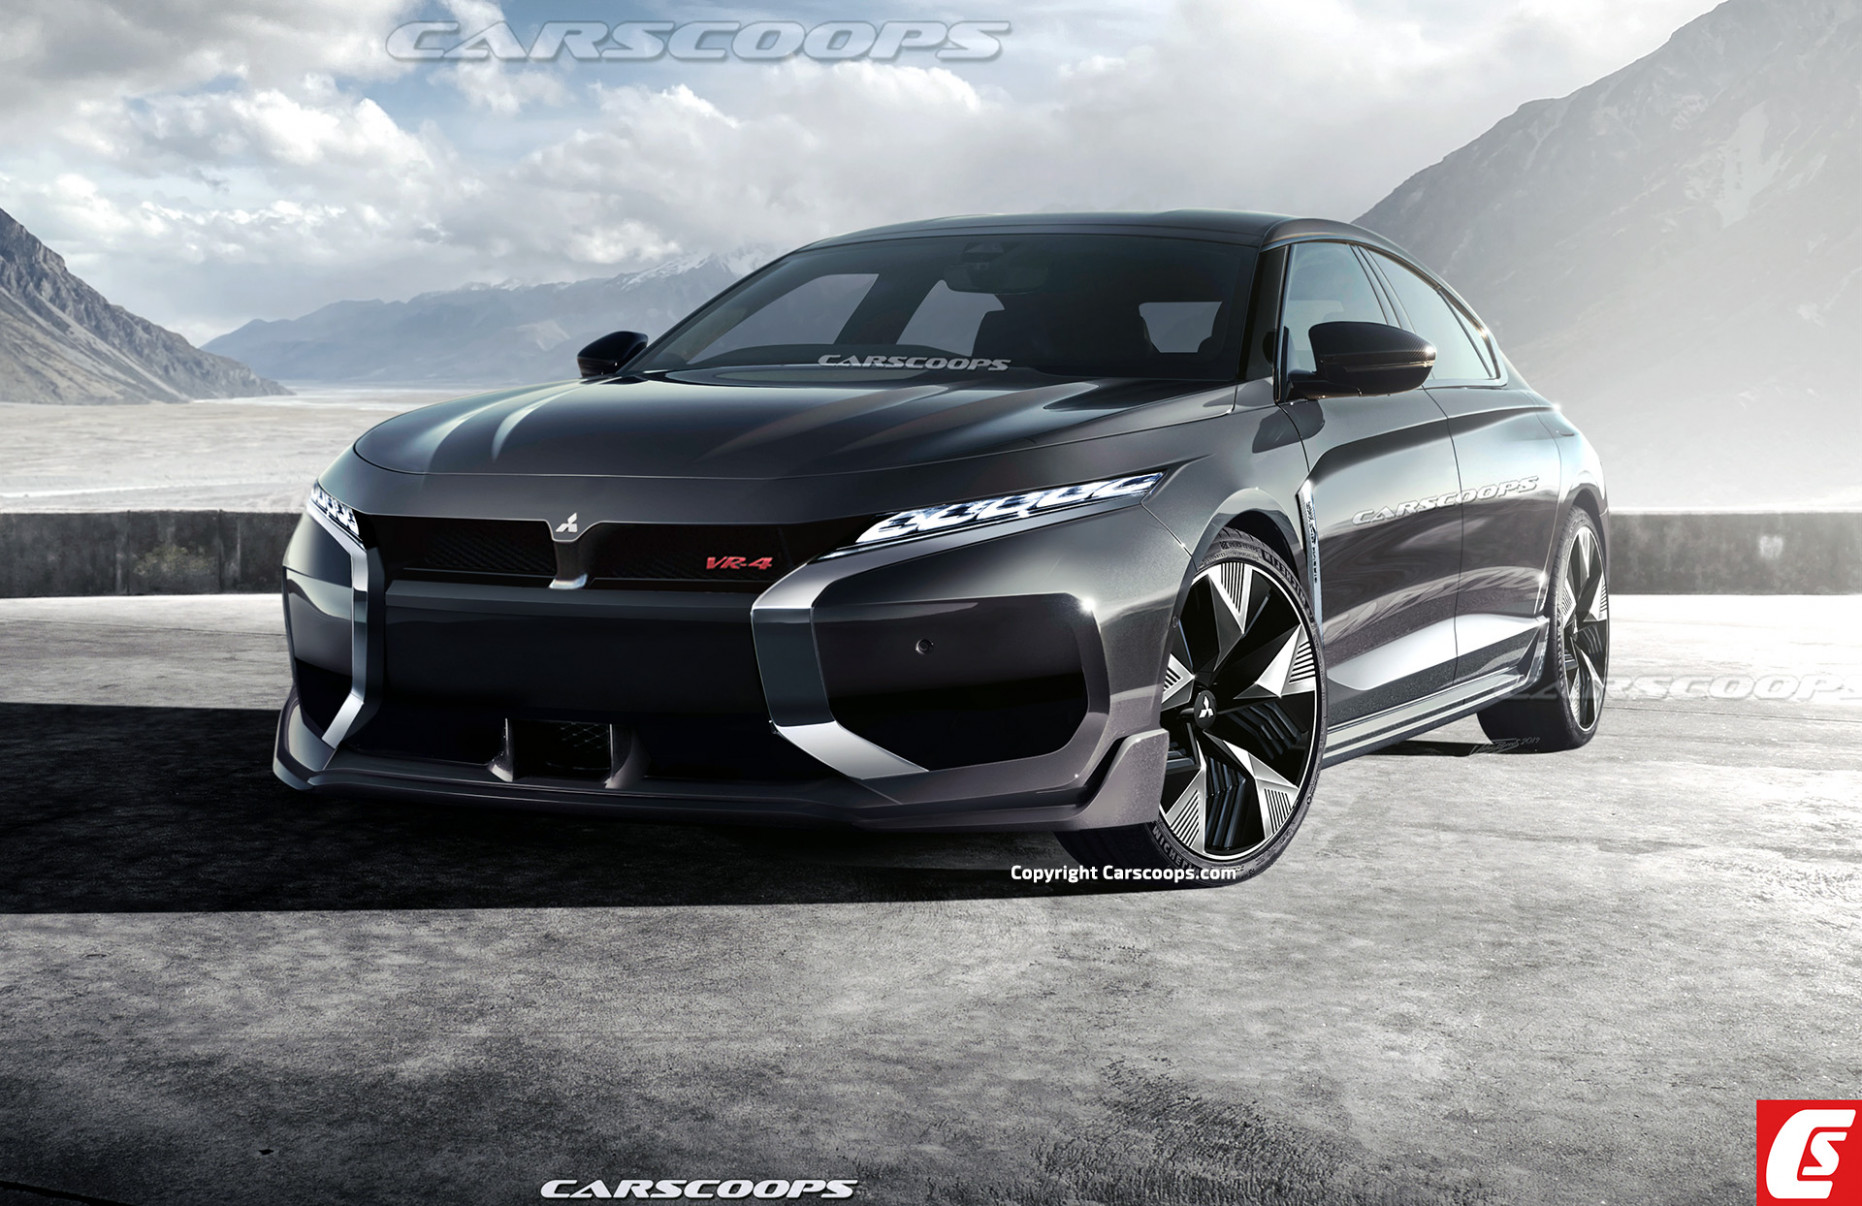 New Model and Performance 2022 Mitsubishi 3000Gt